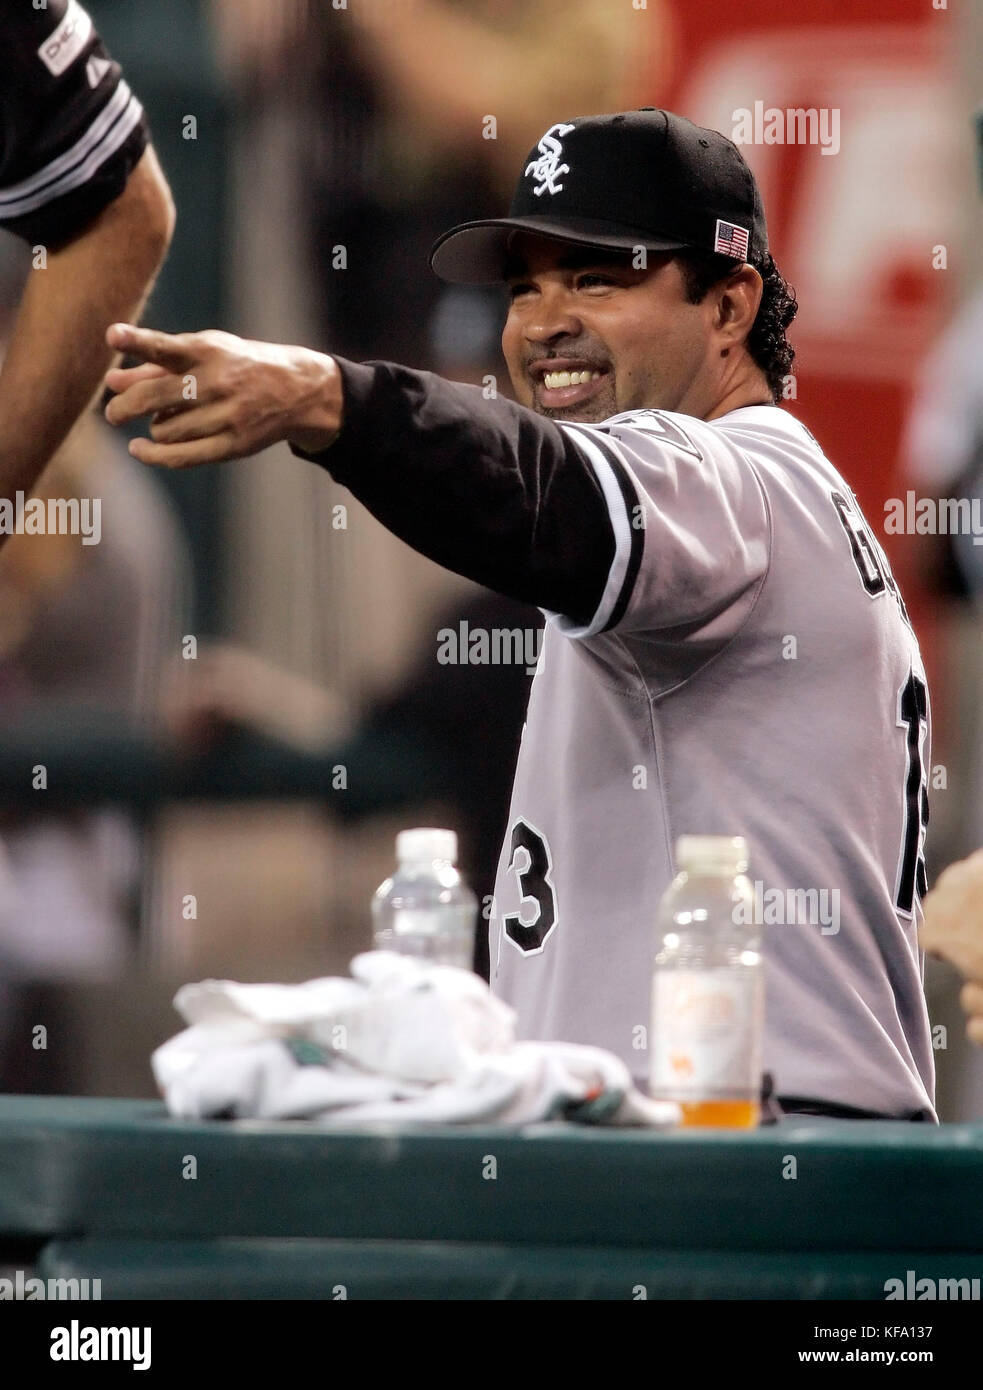 Chicago White Sox manager Ozzie Guillen points to the field before a baseball game against the Los Angeles Angels - Stock Image